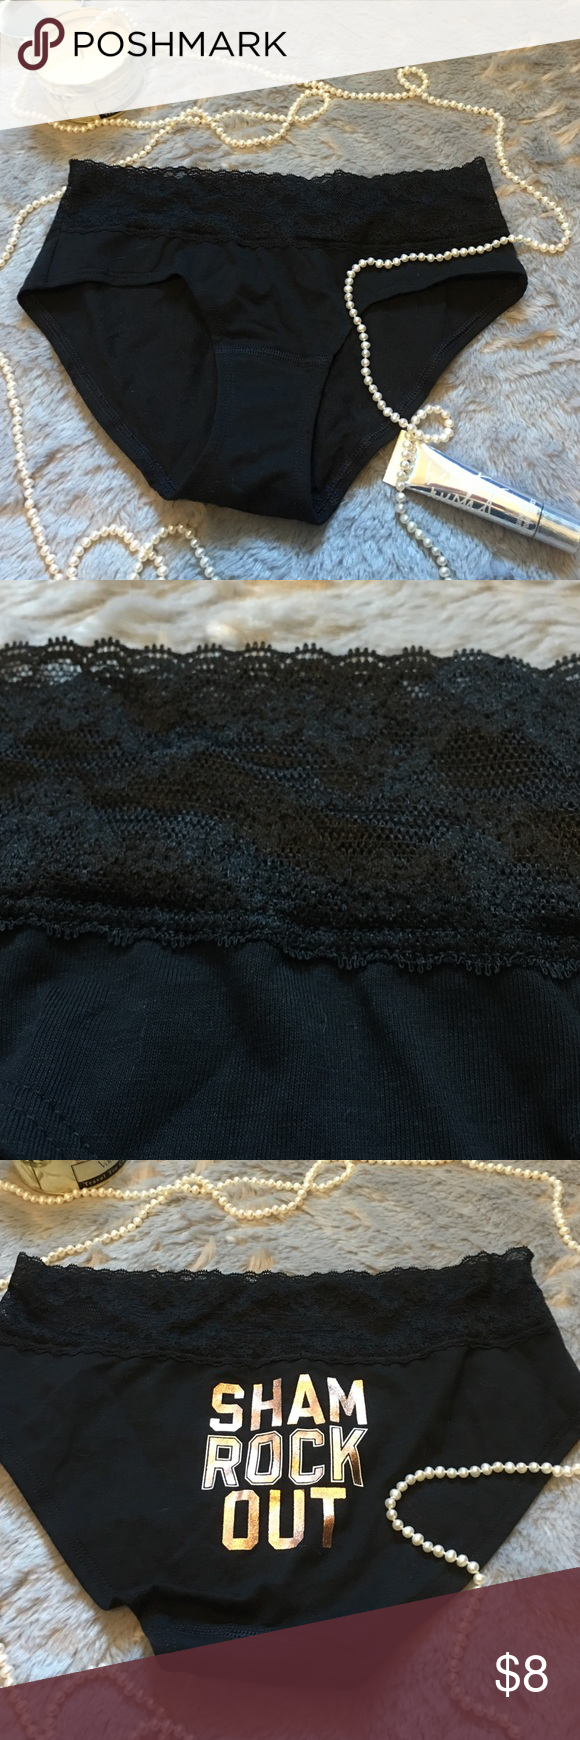 """💕Victoria's Secret💕 Victoria's Secret low rise hiphugger. Black with lace band. """"Shame Rock Out"""" on back. NWT  ❗️No Trades❗️ Proceeds go towards feeding the homeless❗️ Pour la Victoire Intimates & Sleepwear Panties"""